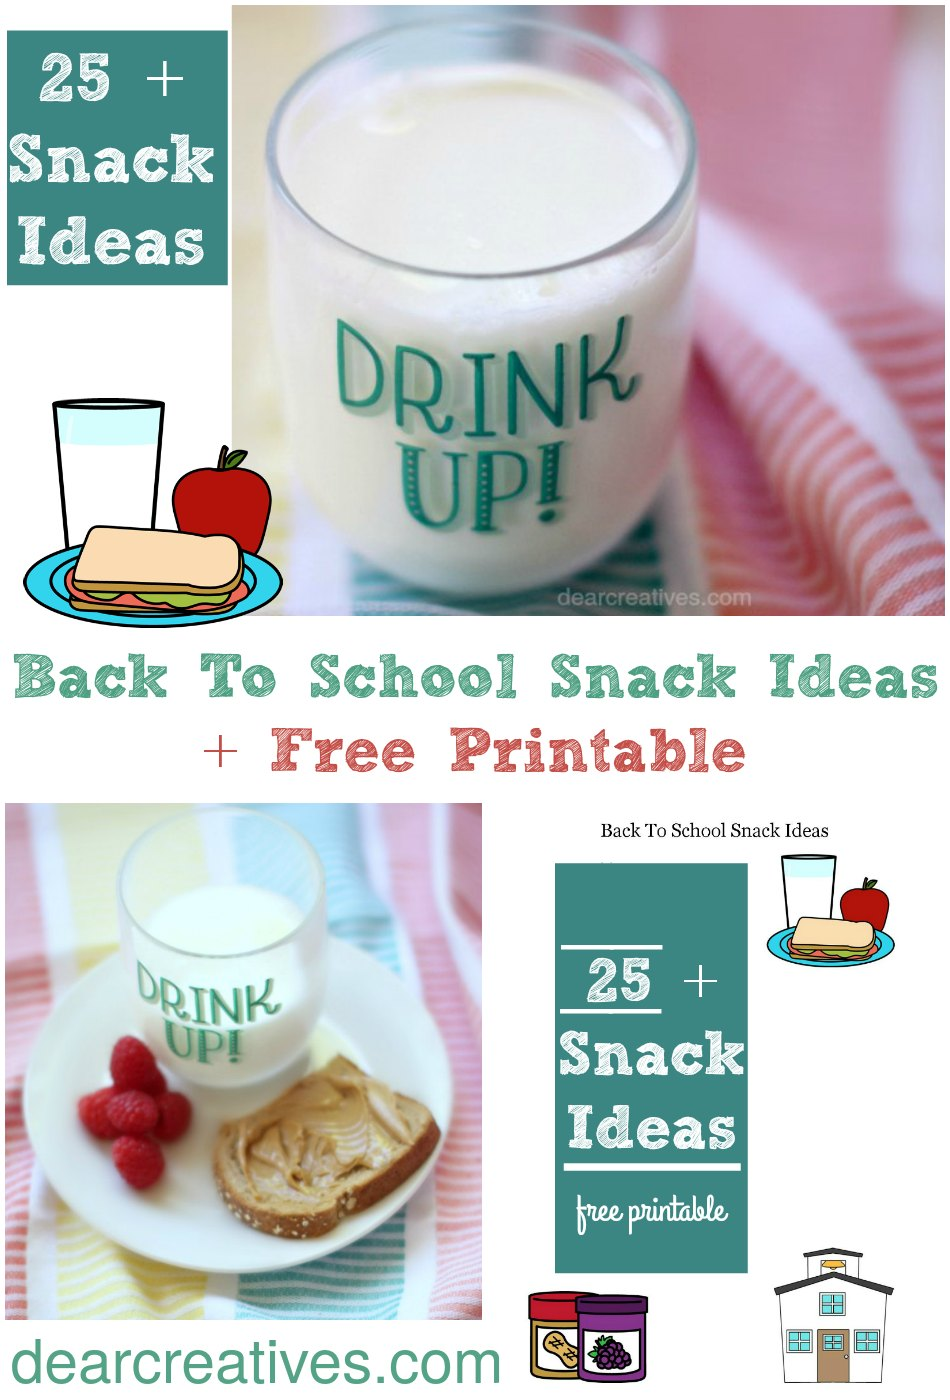 Back to School After School Snack Ideas + Free Printable